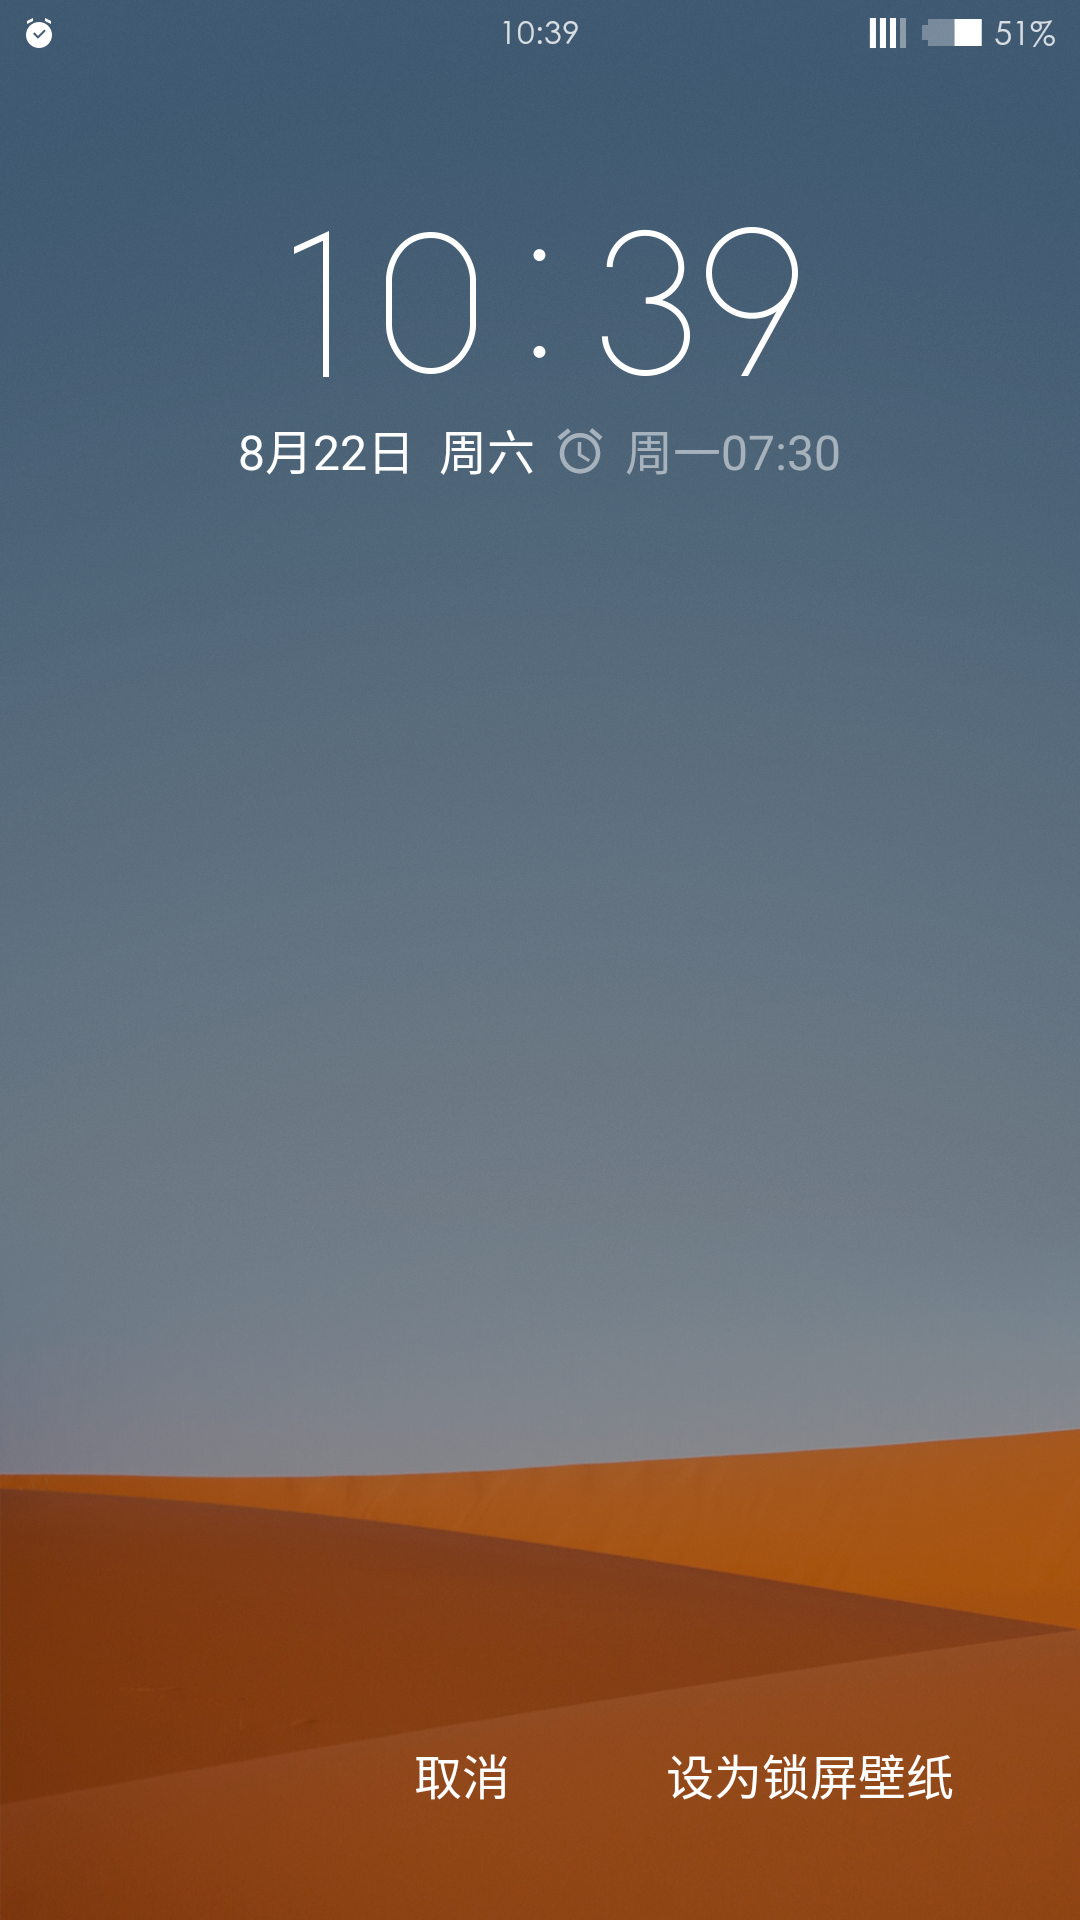 Screenshot_2015-08-22-10-39-32.png